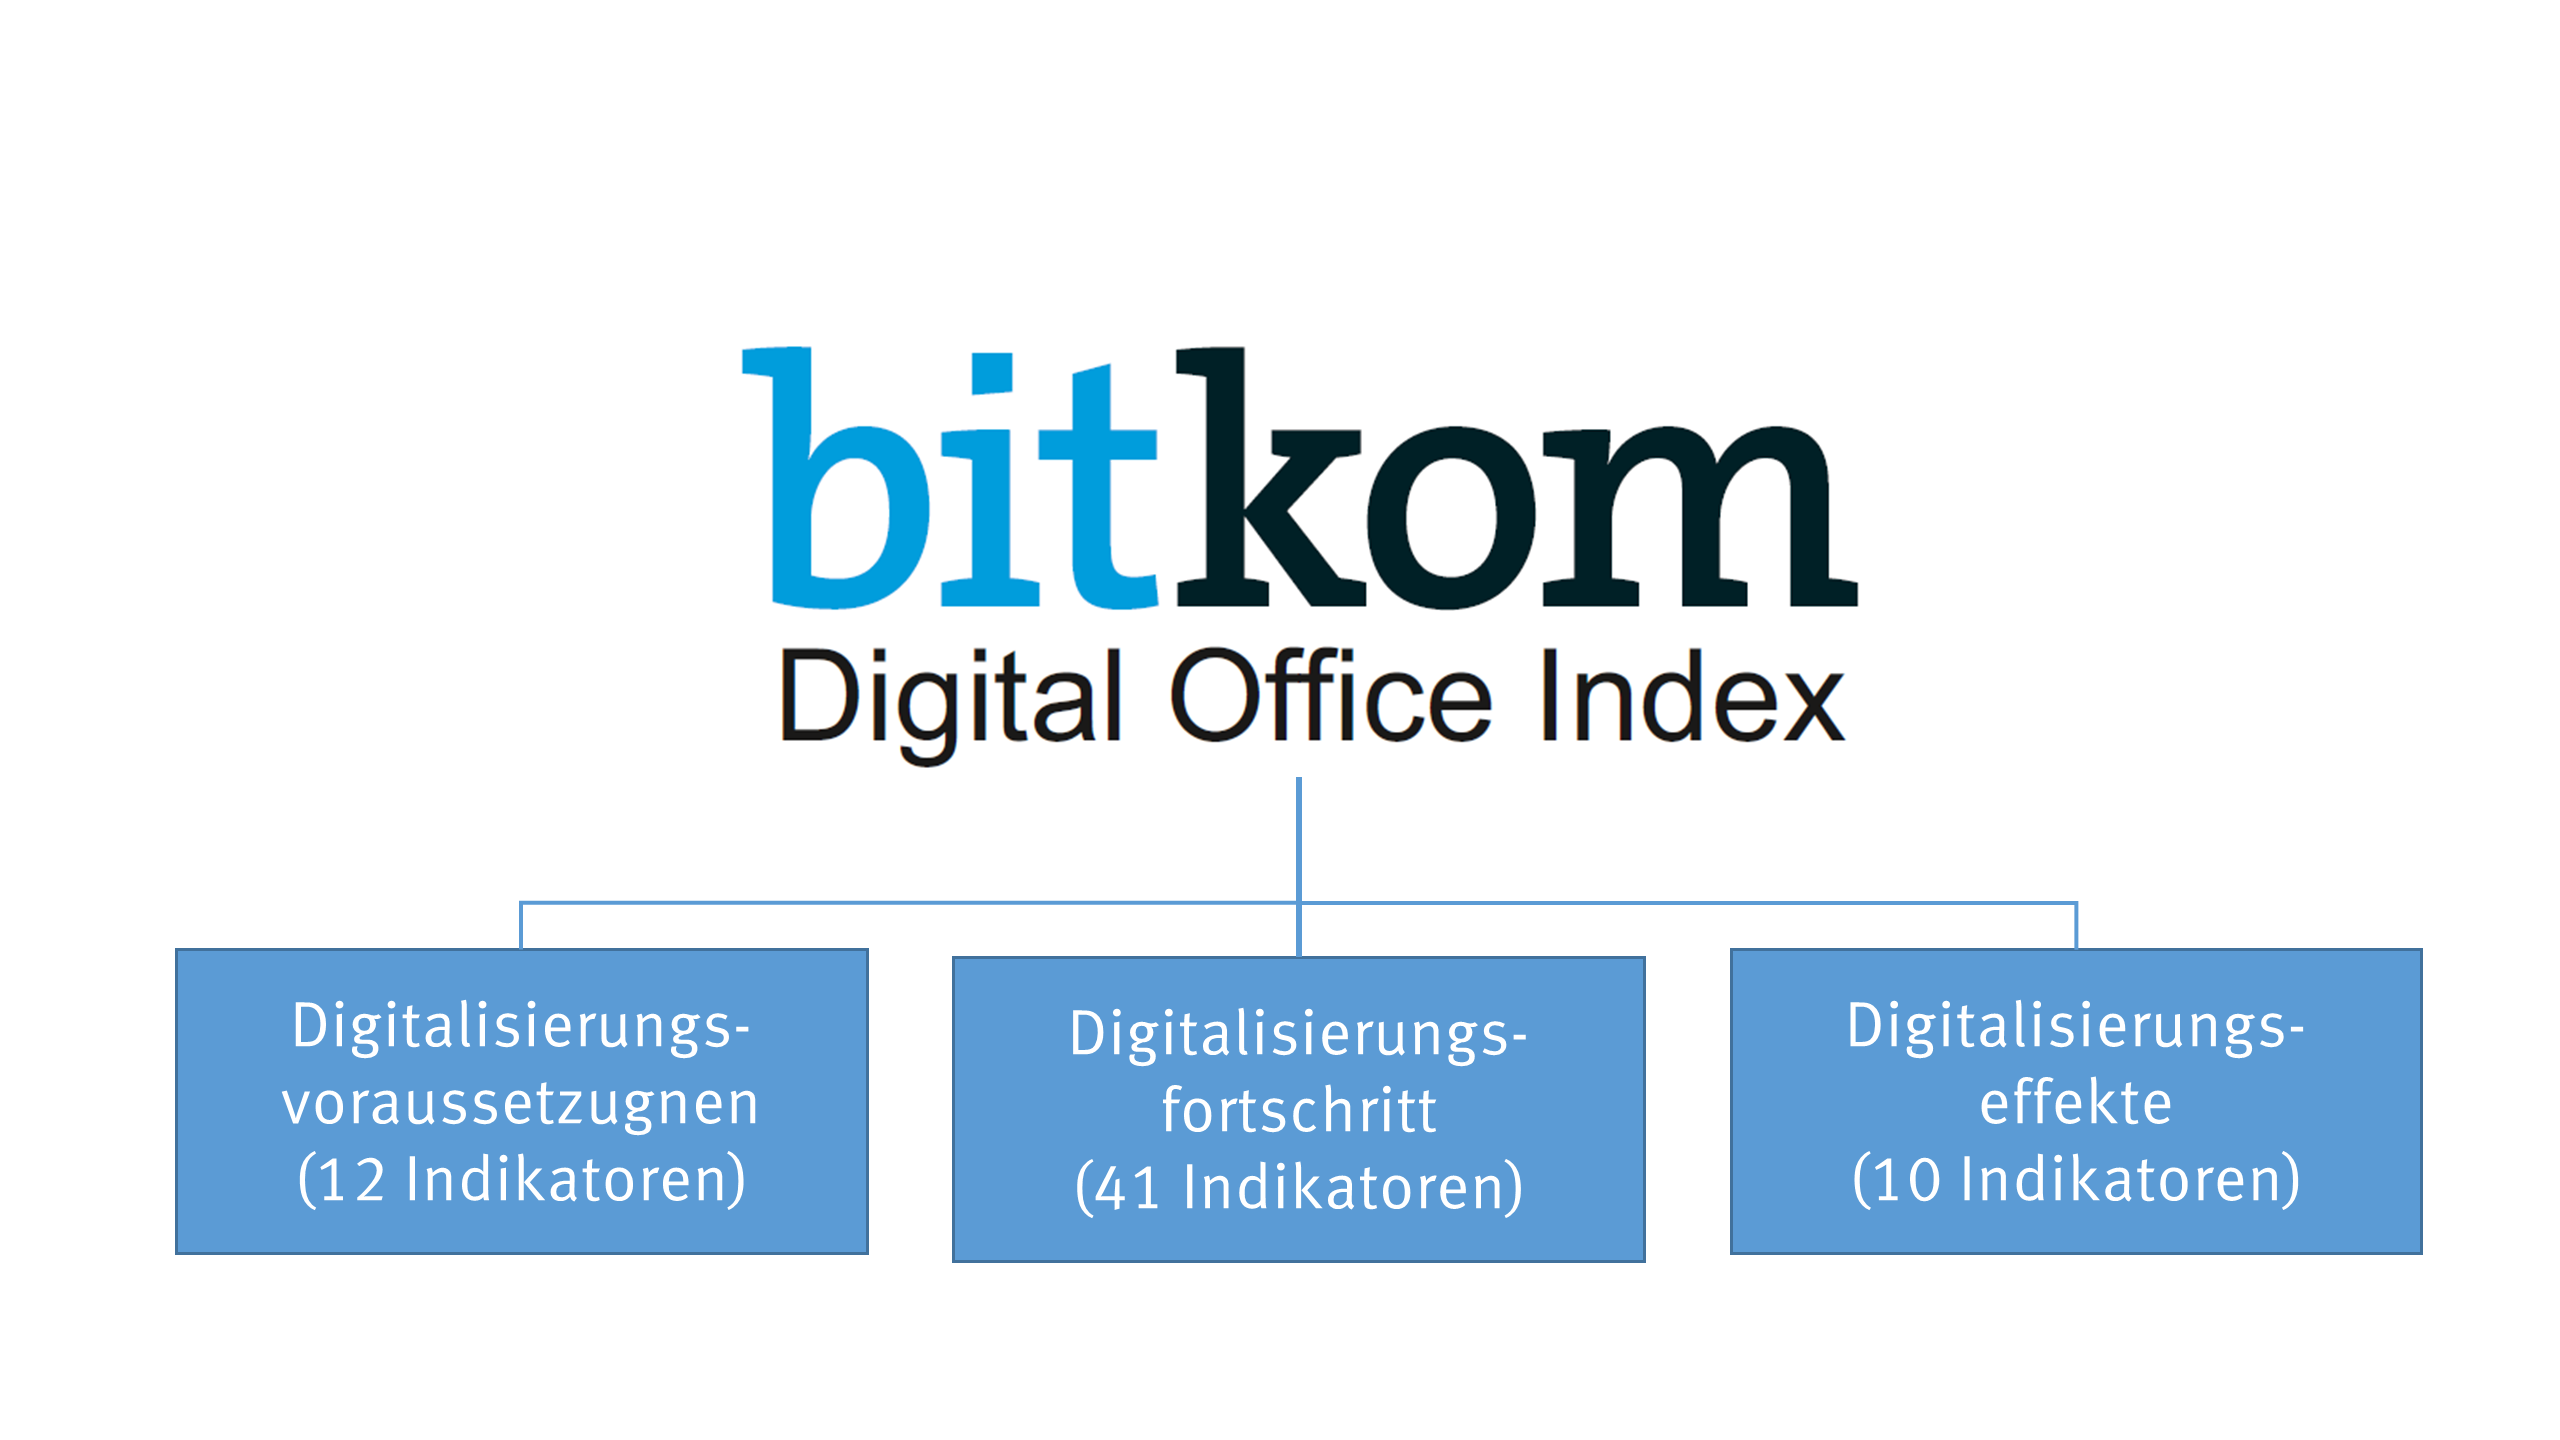 Themen des Digital Office Index